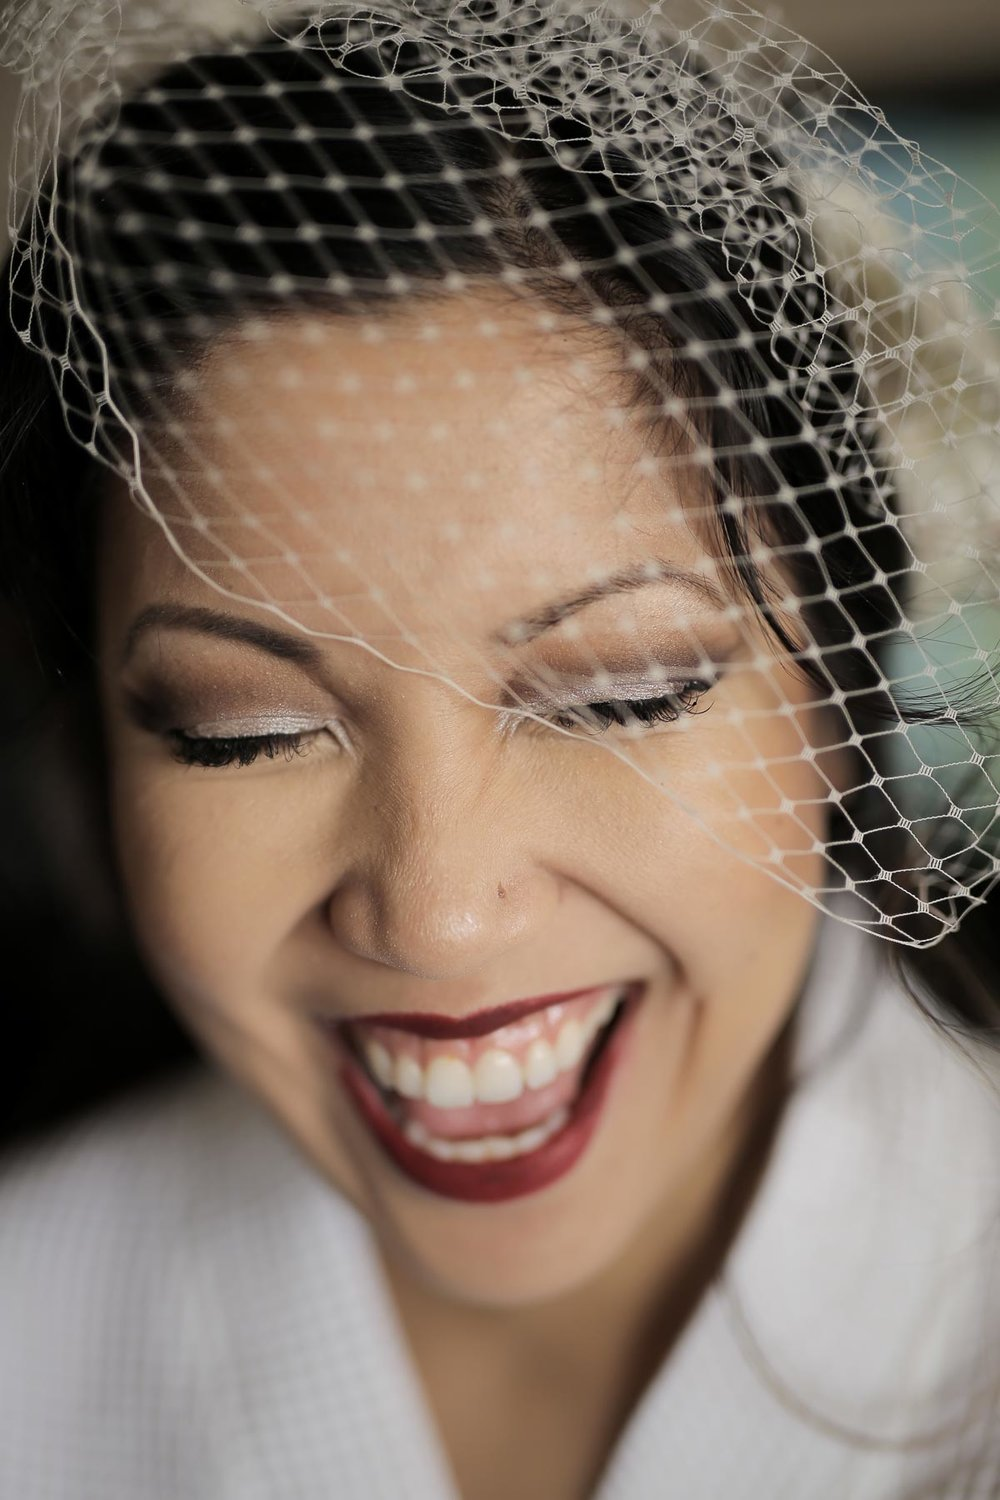 bride-getting-ready-birdcage-veil-red-lips_pepper_nix_photography-9.jpg